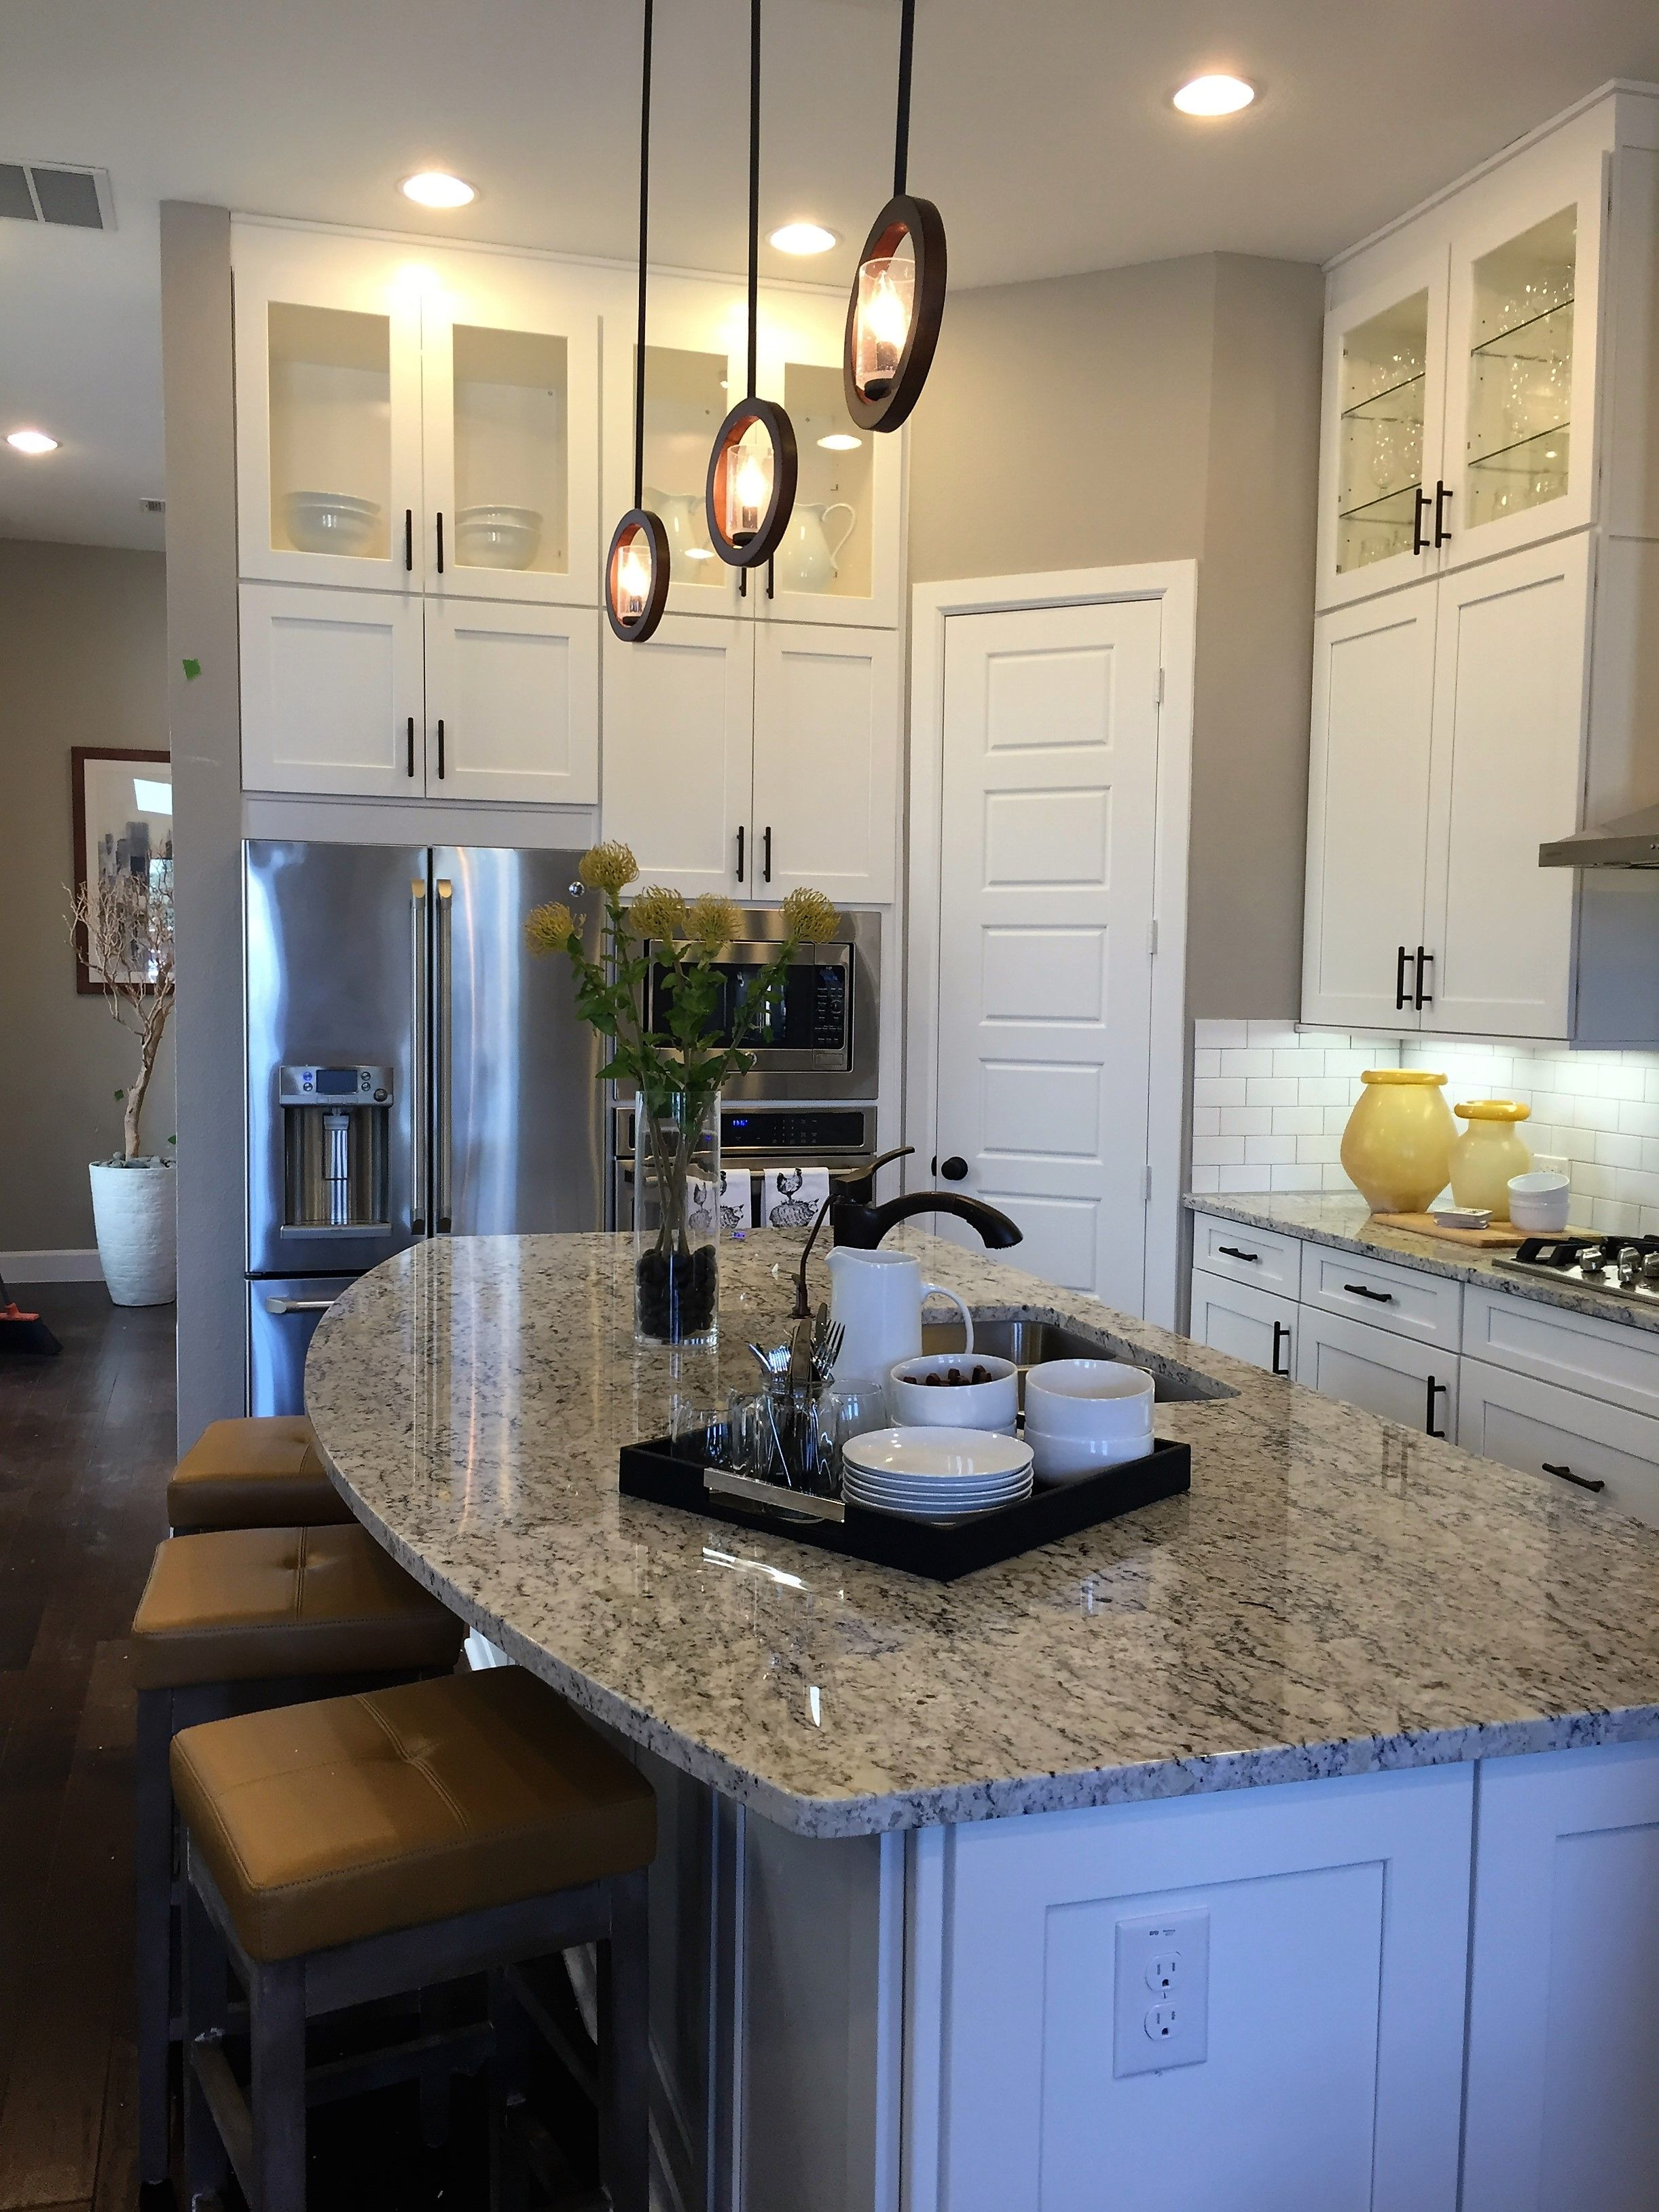 Pin by Wendy Holguin on home ideas | Model home decorating ... on Kitchen Model Ideas  id=46384